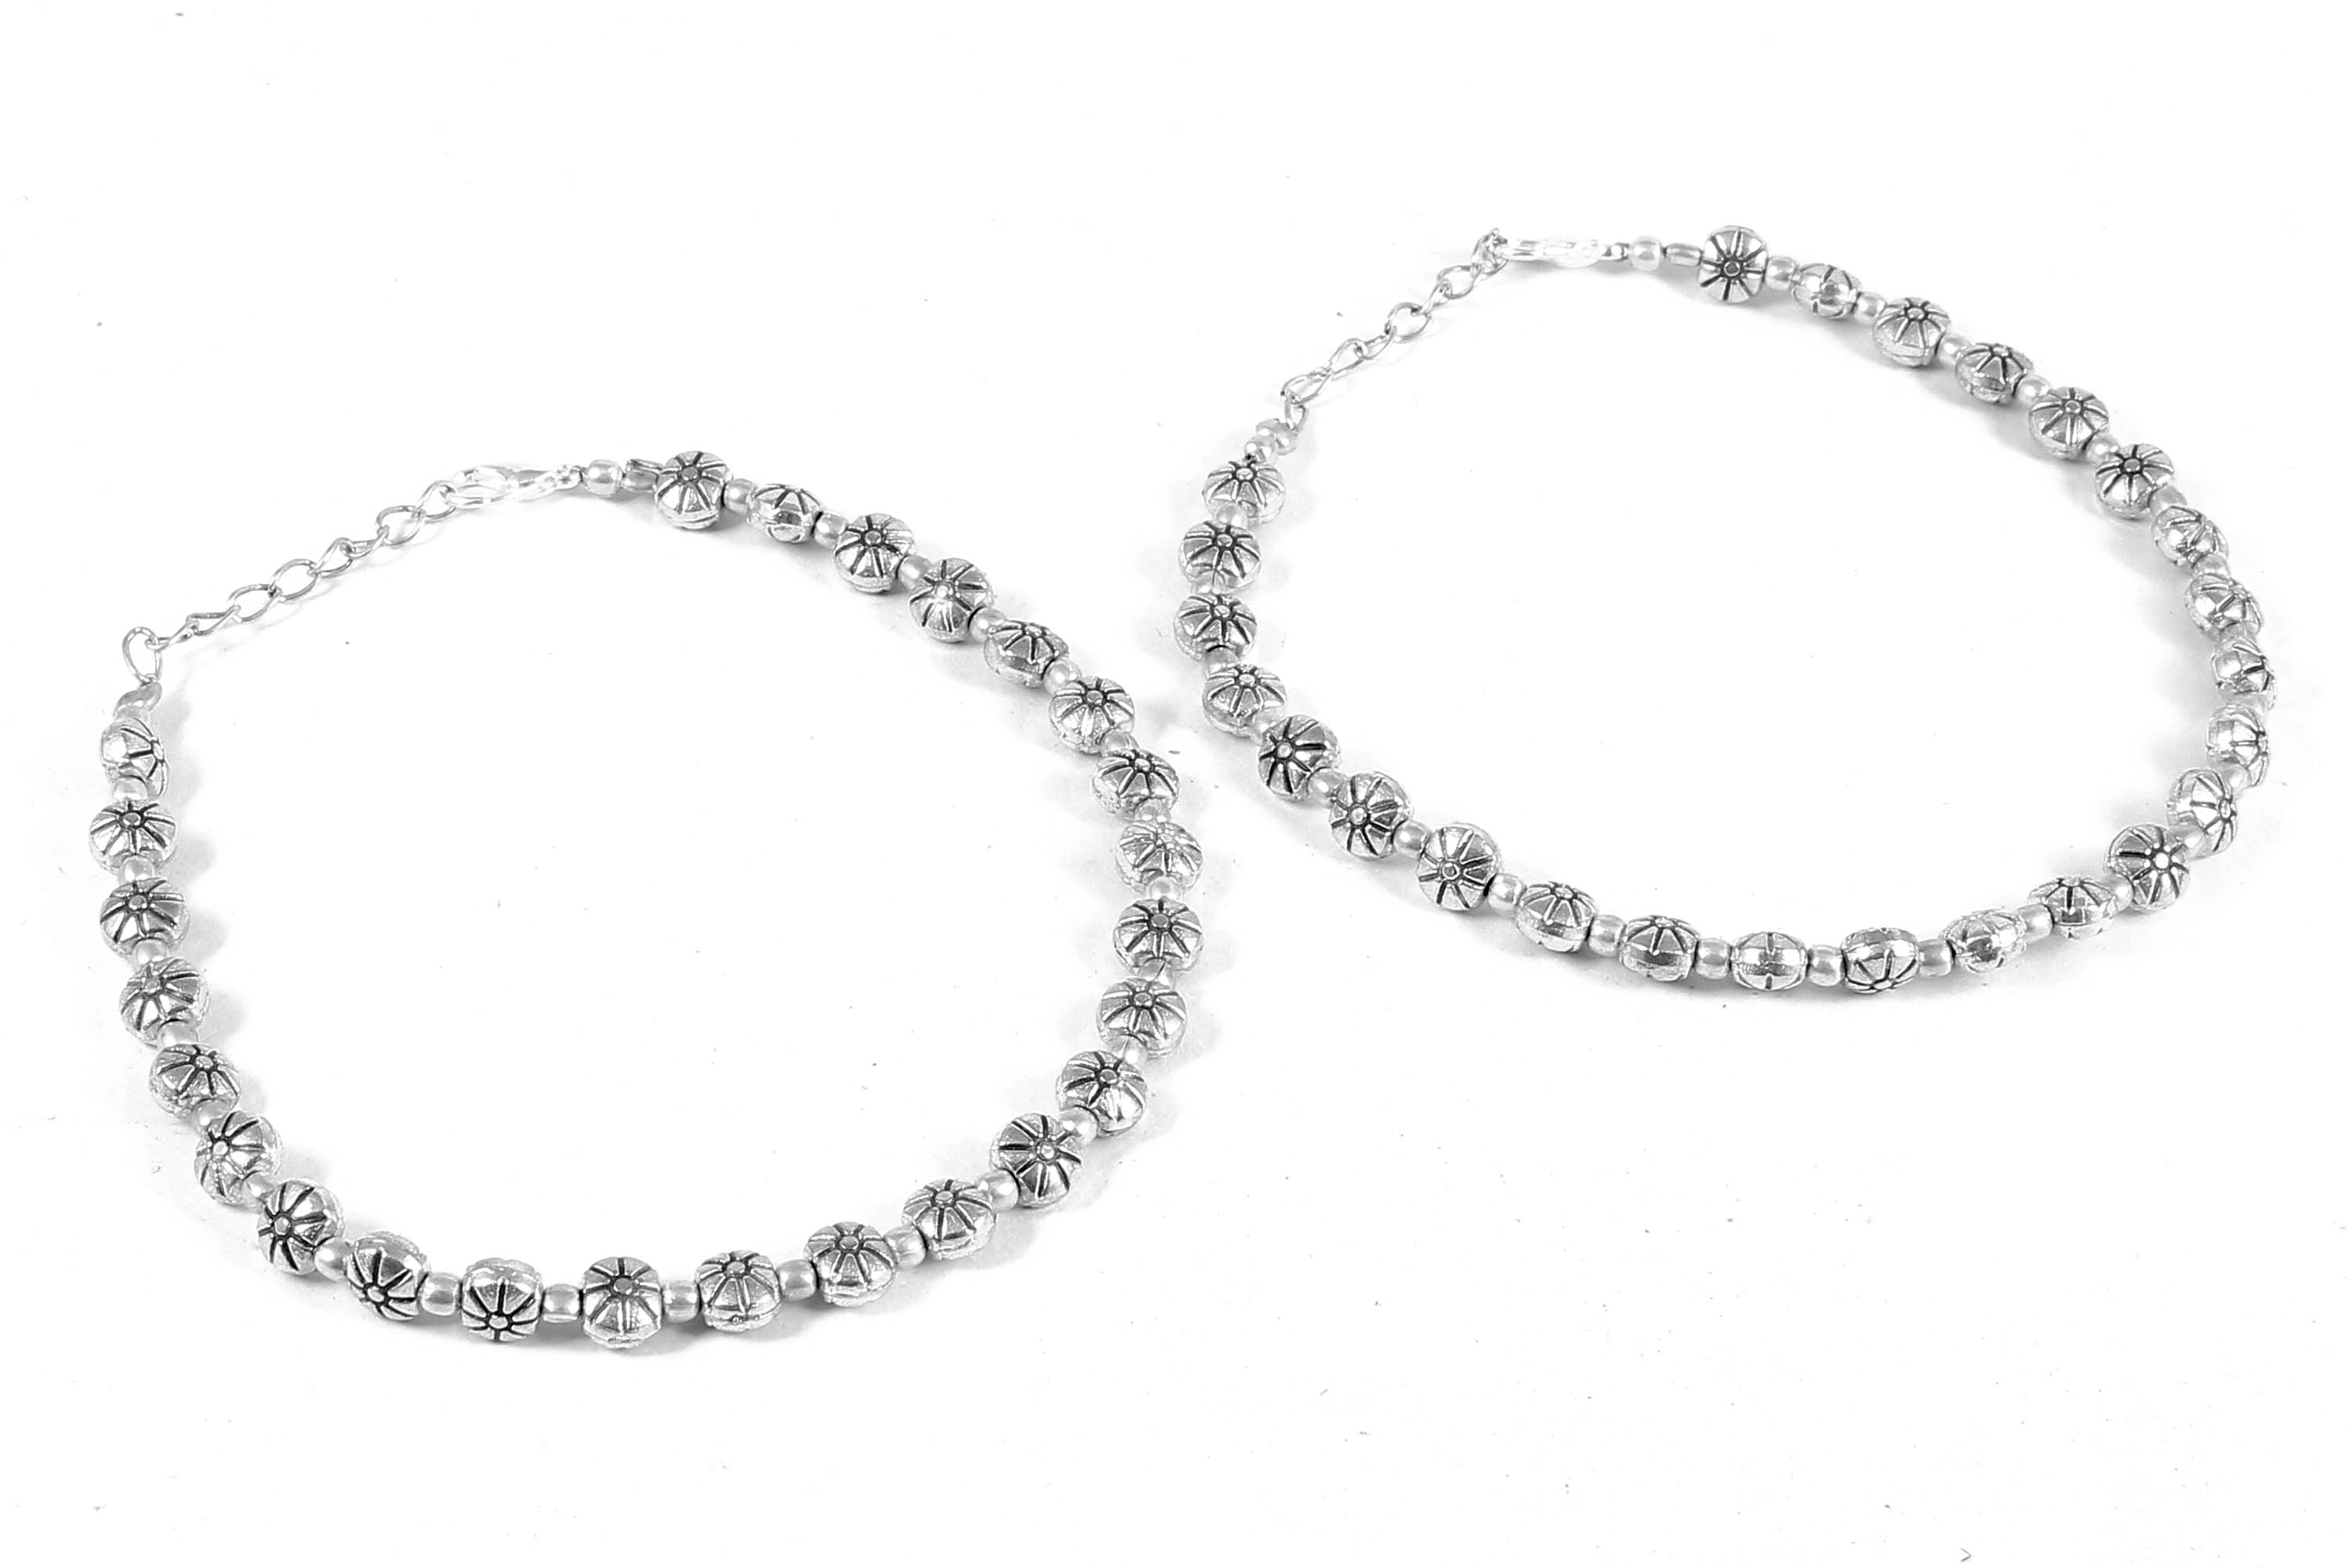 Floral Design Silver Plated Anklet | Foxiie Trends